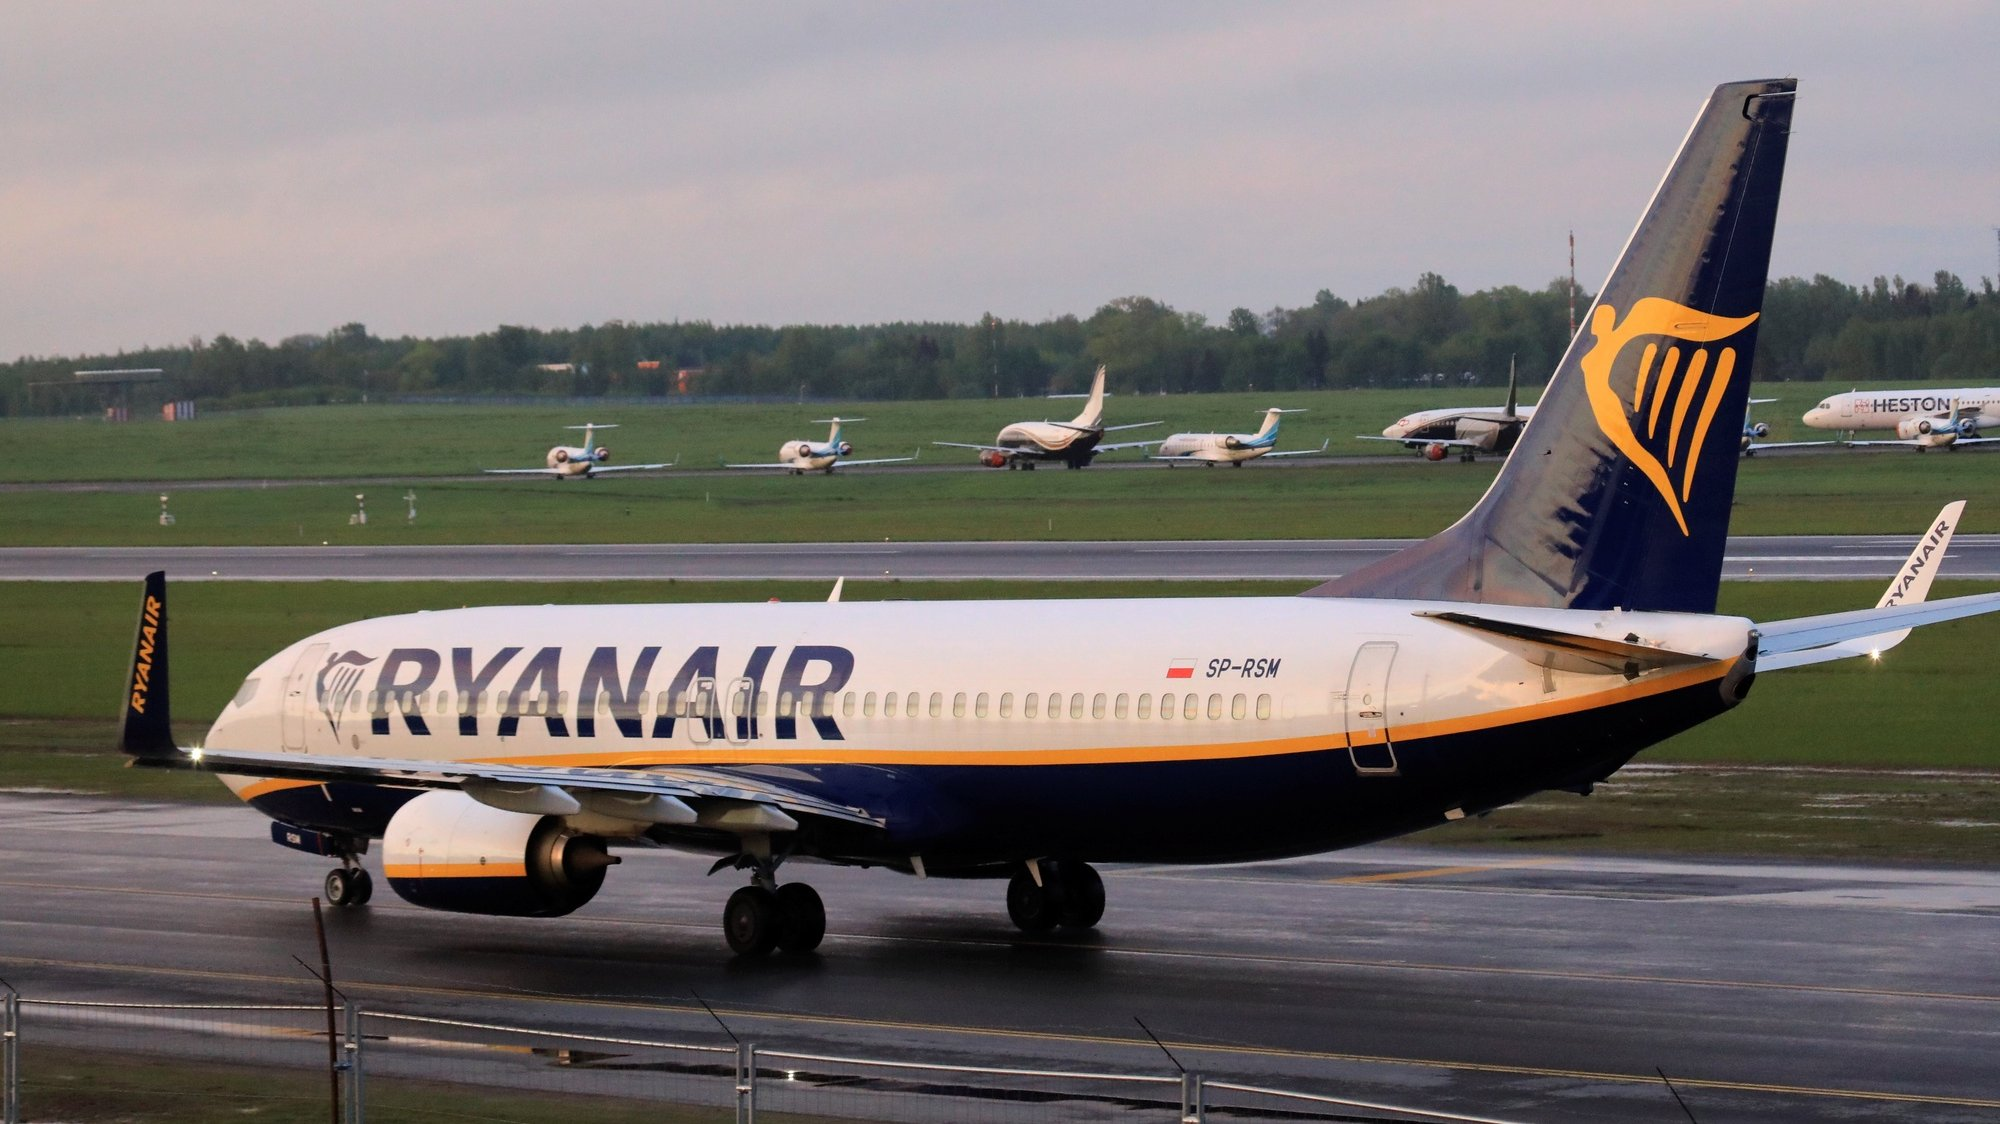 epa09224278 A Ryanair Boeing 737-800 lands in the Vilnius International Airport, in Vilnius, Lithuania, 23 May 2021. As Ryanair spokeswoman said, 'the aircraft carrying scores of passengers from Athens to Vilnius was diverted to the Belarusian capital under the escort of a Mig-29 fighter jet after its crew was notified by authorities in Minsk of a 'potential security threat on board'. A Ryanair flight from Athens, Greece to Vilnius, Lithuania, with Belarus' opposition journalist Roman Protasevich onboard, has been diverted and forced to land in Minsk on 23 May 2021, after alleged bomb threat. Protasevich was detained by Belarusian Police after landing, as Belarusian Human Rights Center 'Viasna' reports and Lithuanian President Gitanas Nauseda demanded immediate release of Protasevich.  EPA/STRINGER